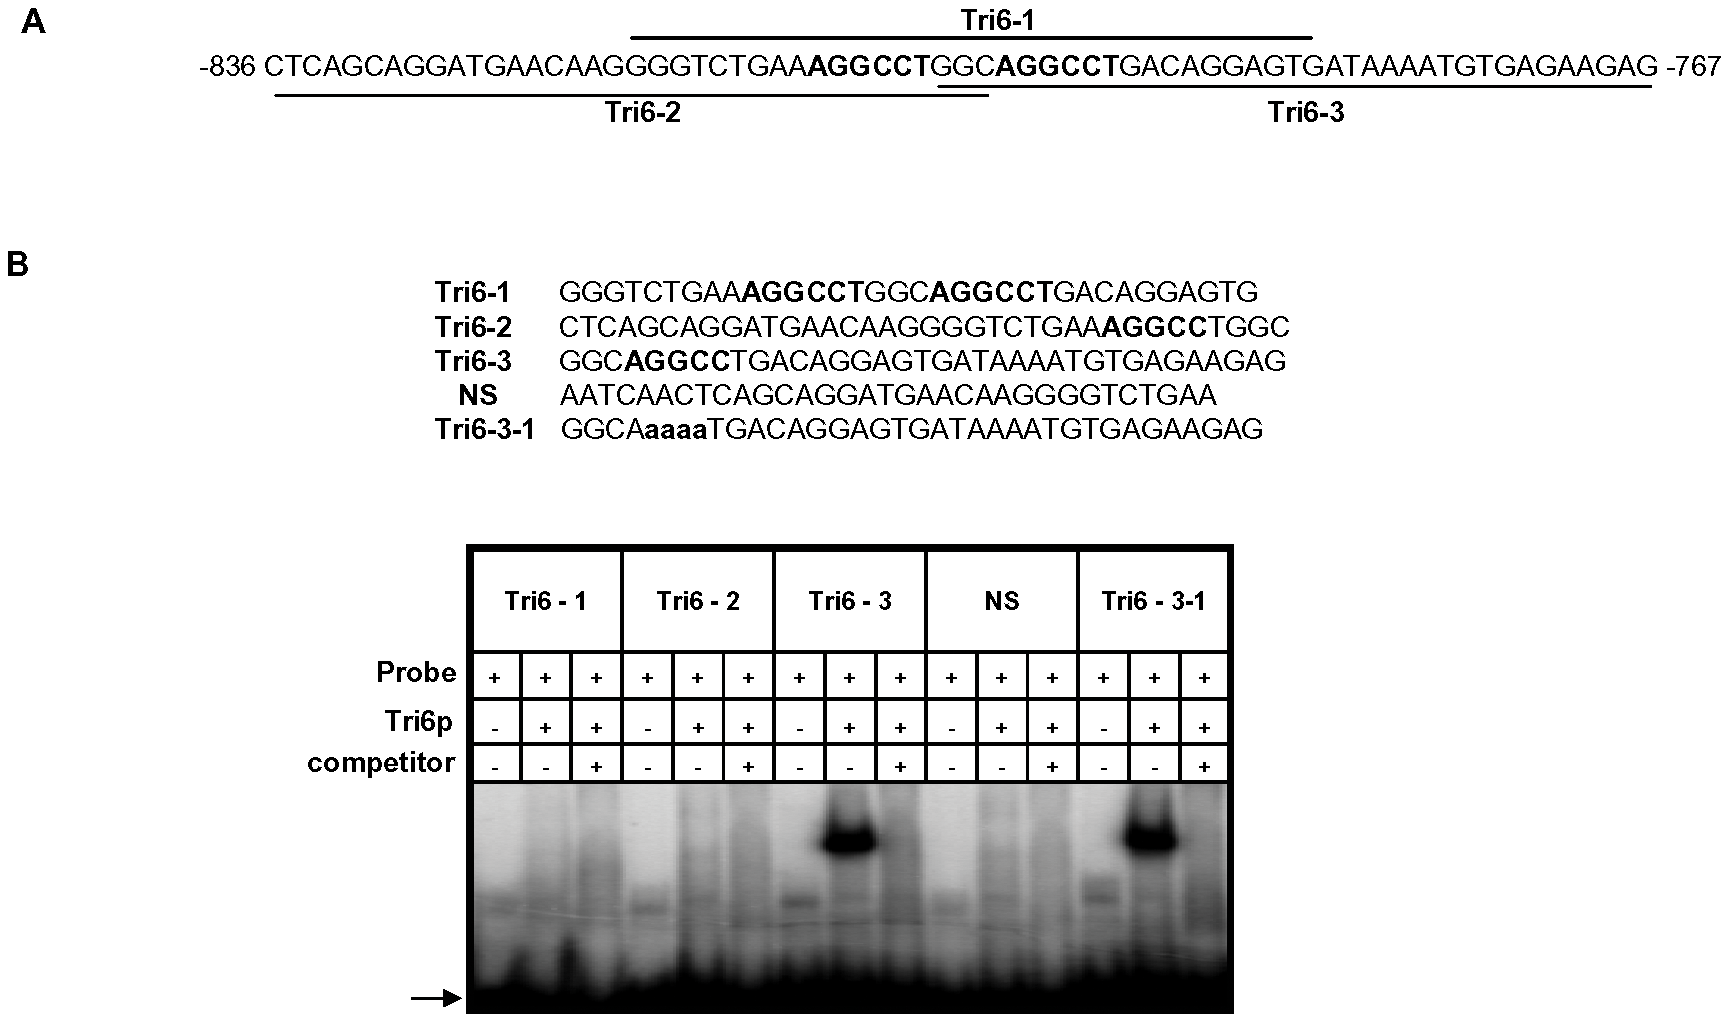 The Tri6 protein does not recognize the YNAGGCC motif by EMSA analyses.